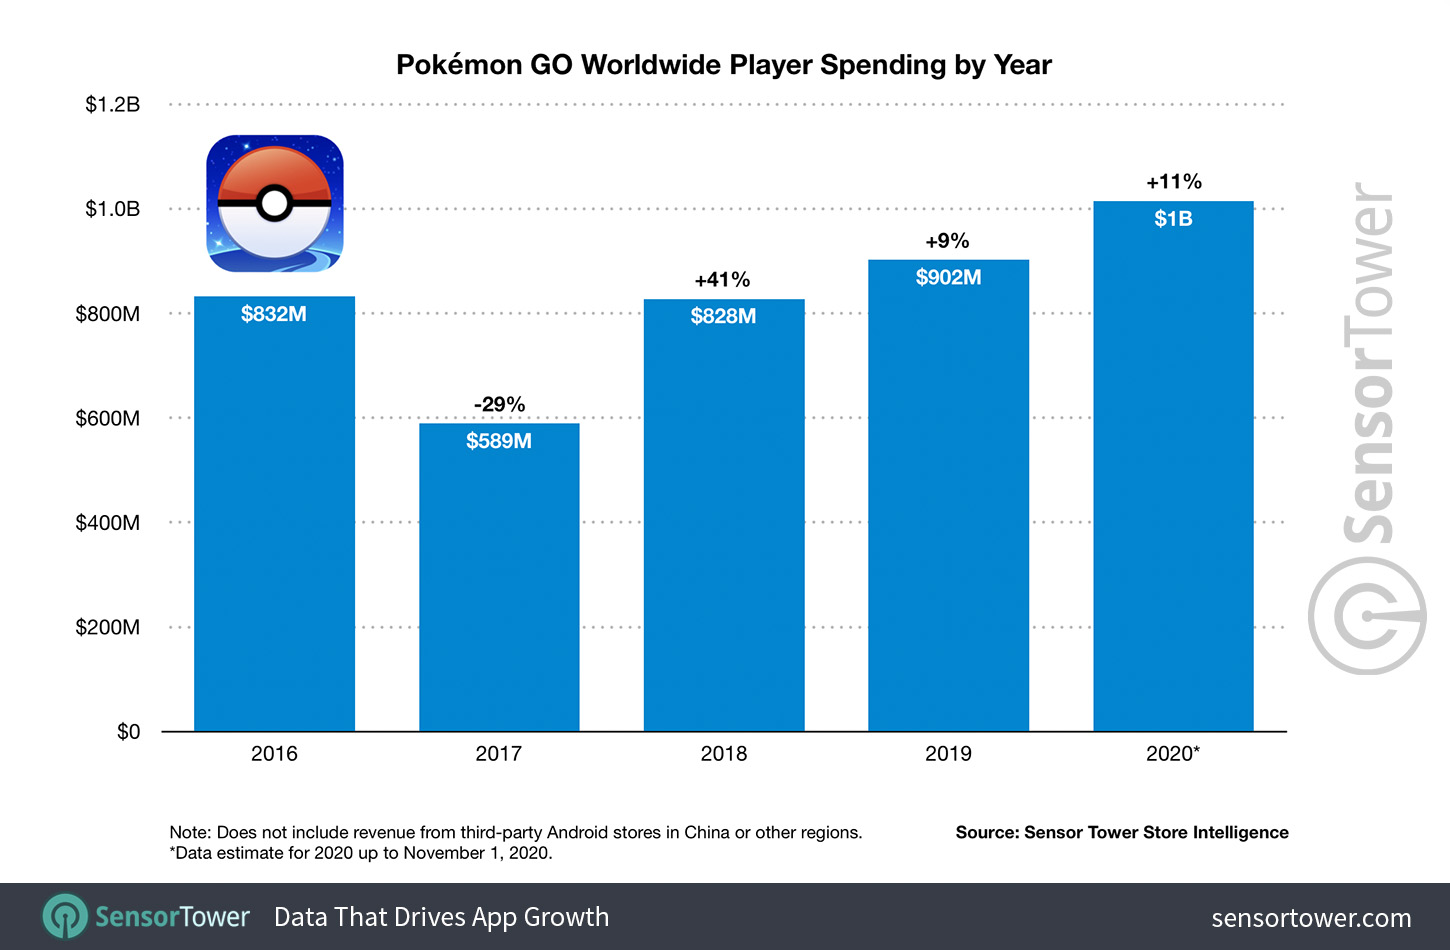 Pokémon GO Worldwide User Spending By Year For 2016 to 2020